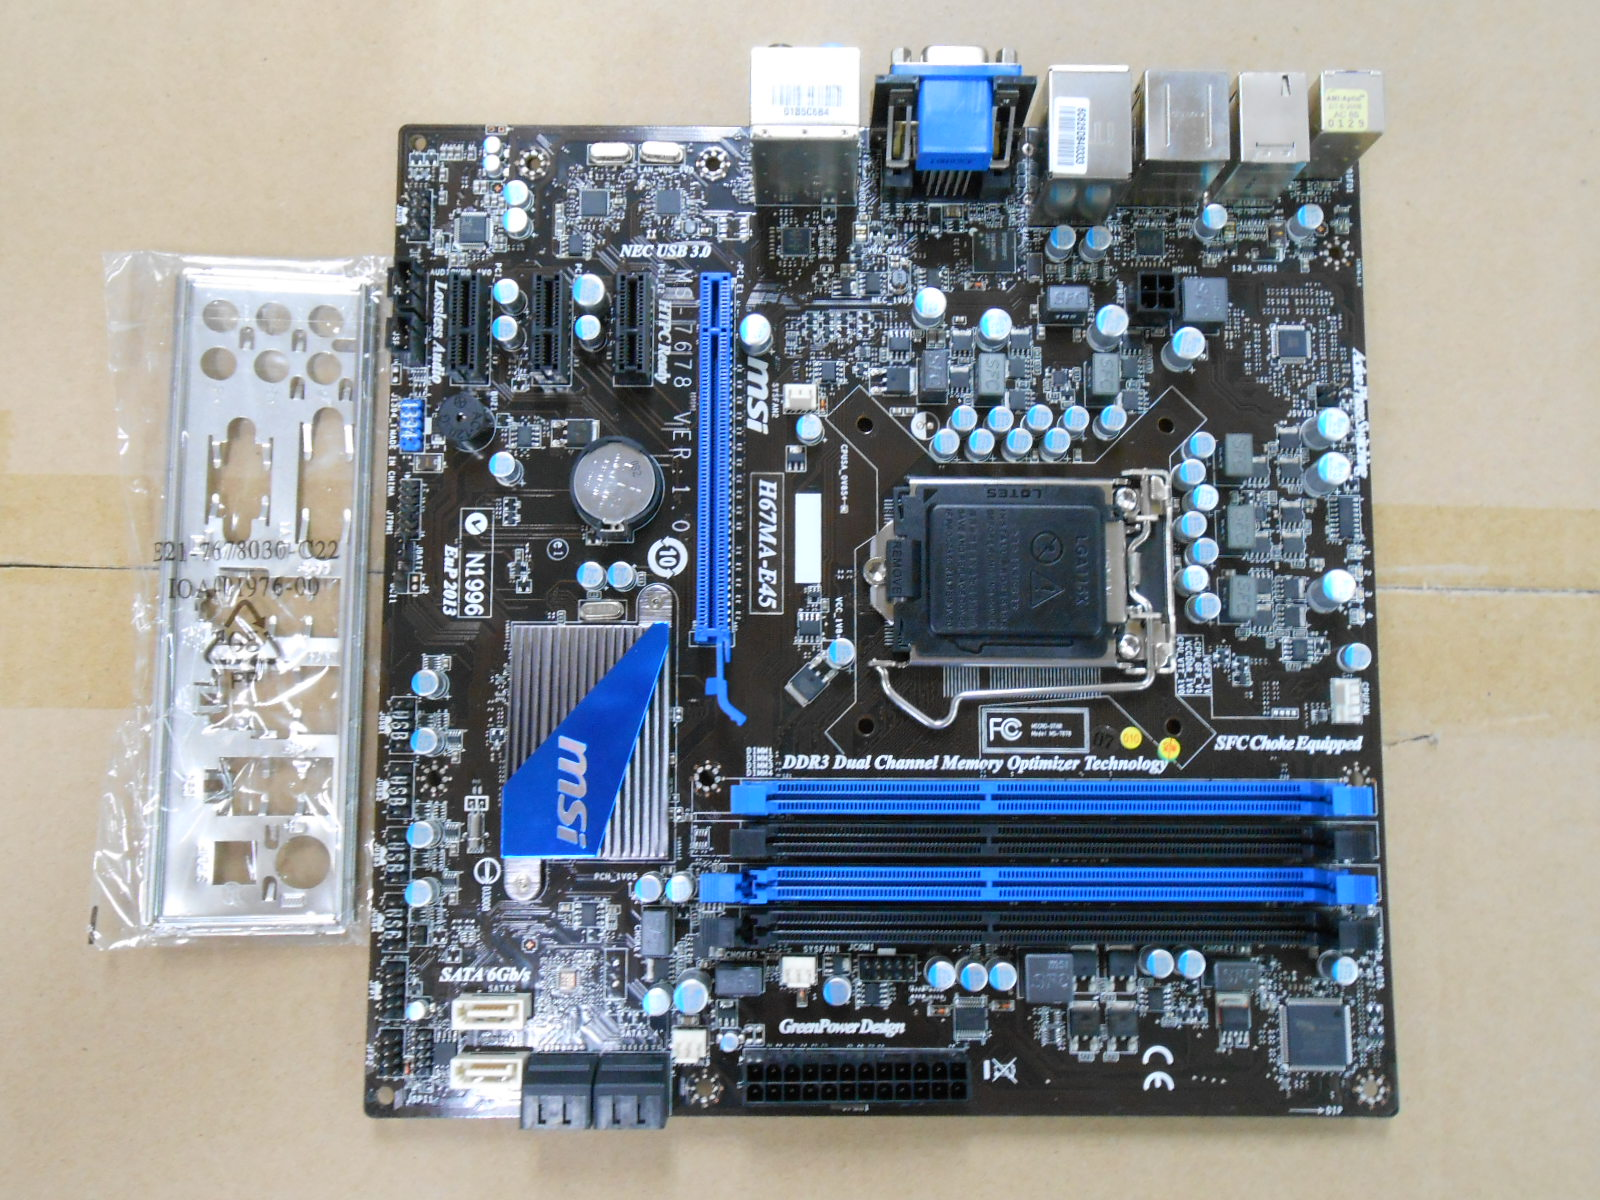 original motherboard H67MA-E45(B3) LGA 1155 DDR3 32GB for i3 i5 i7 H67MA-E45 H67 Desktop motherborad кварцевые часы nixon sentry chrono black rose gold